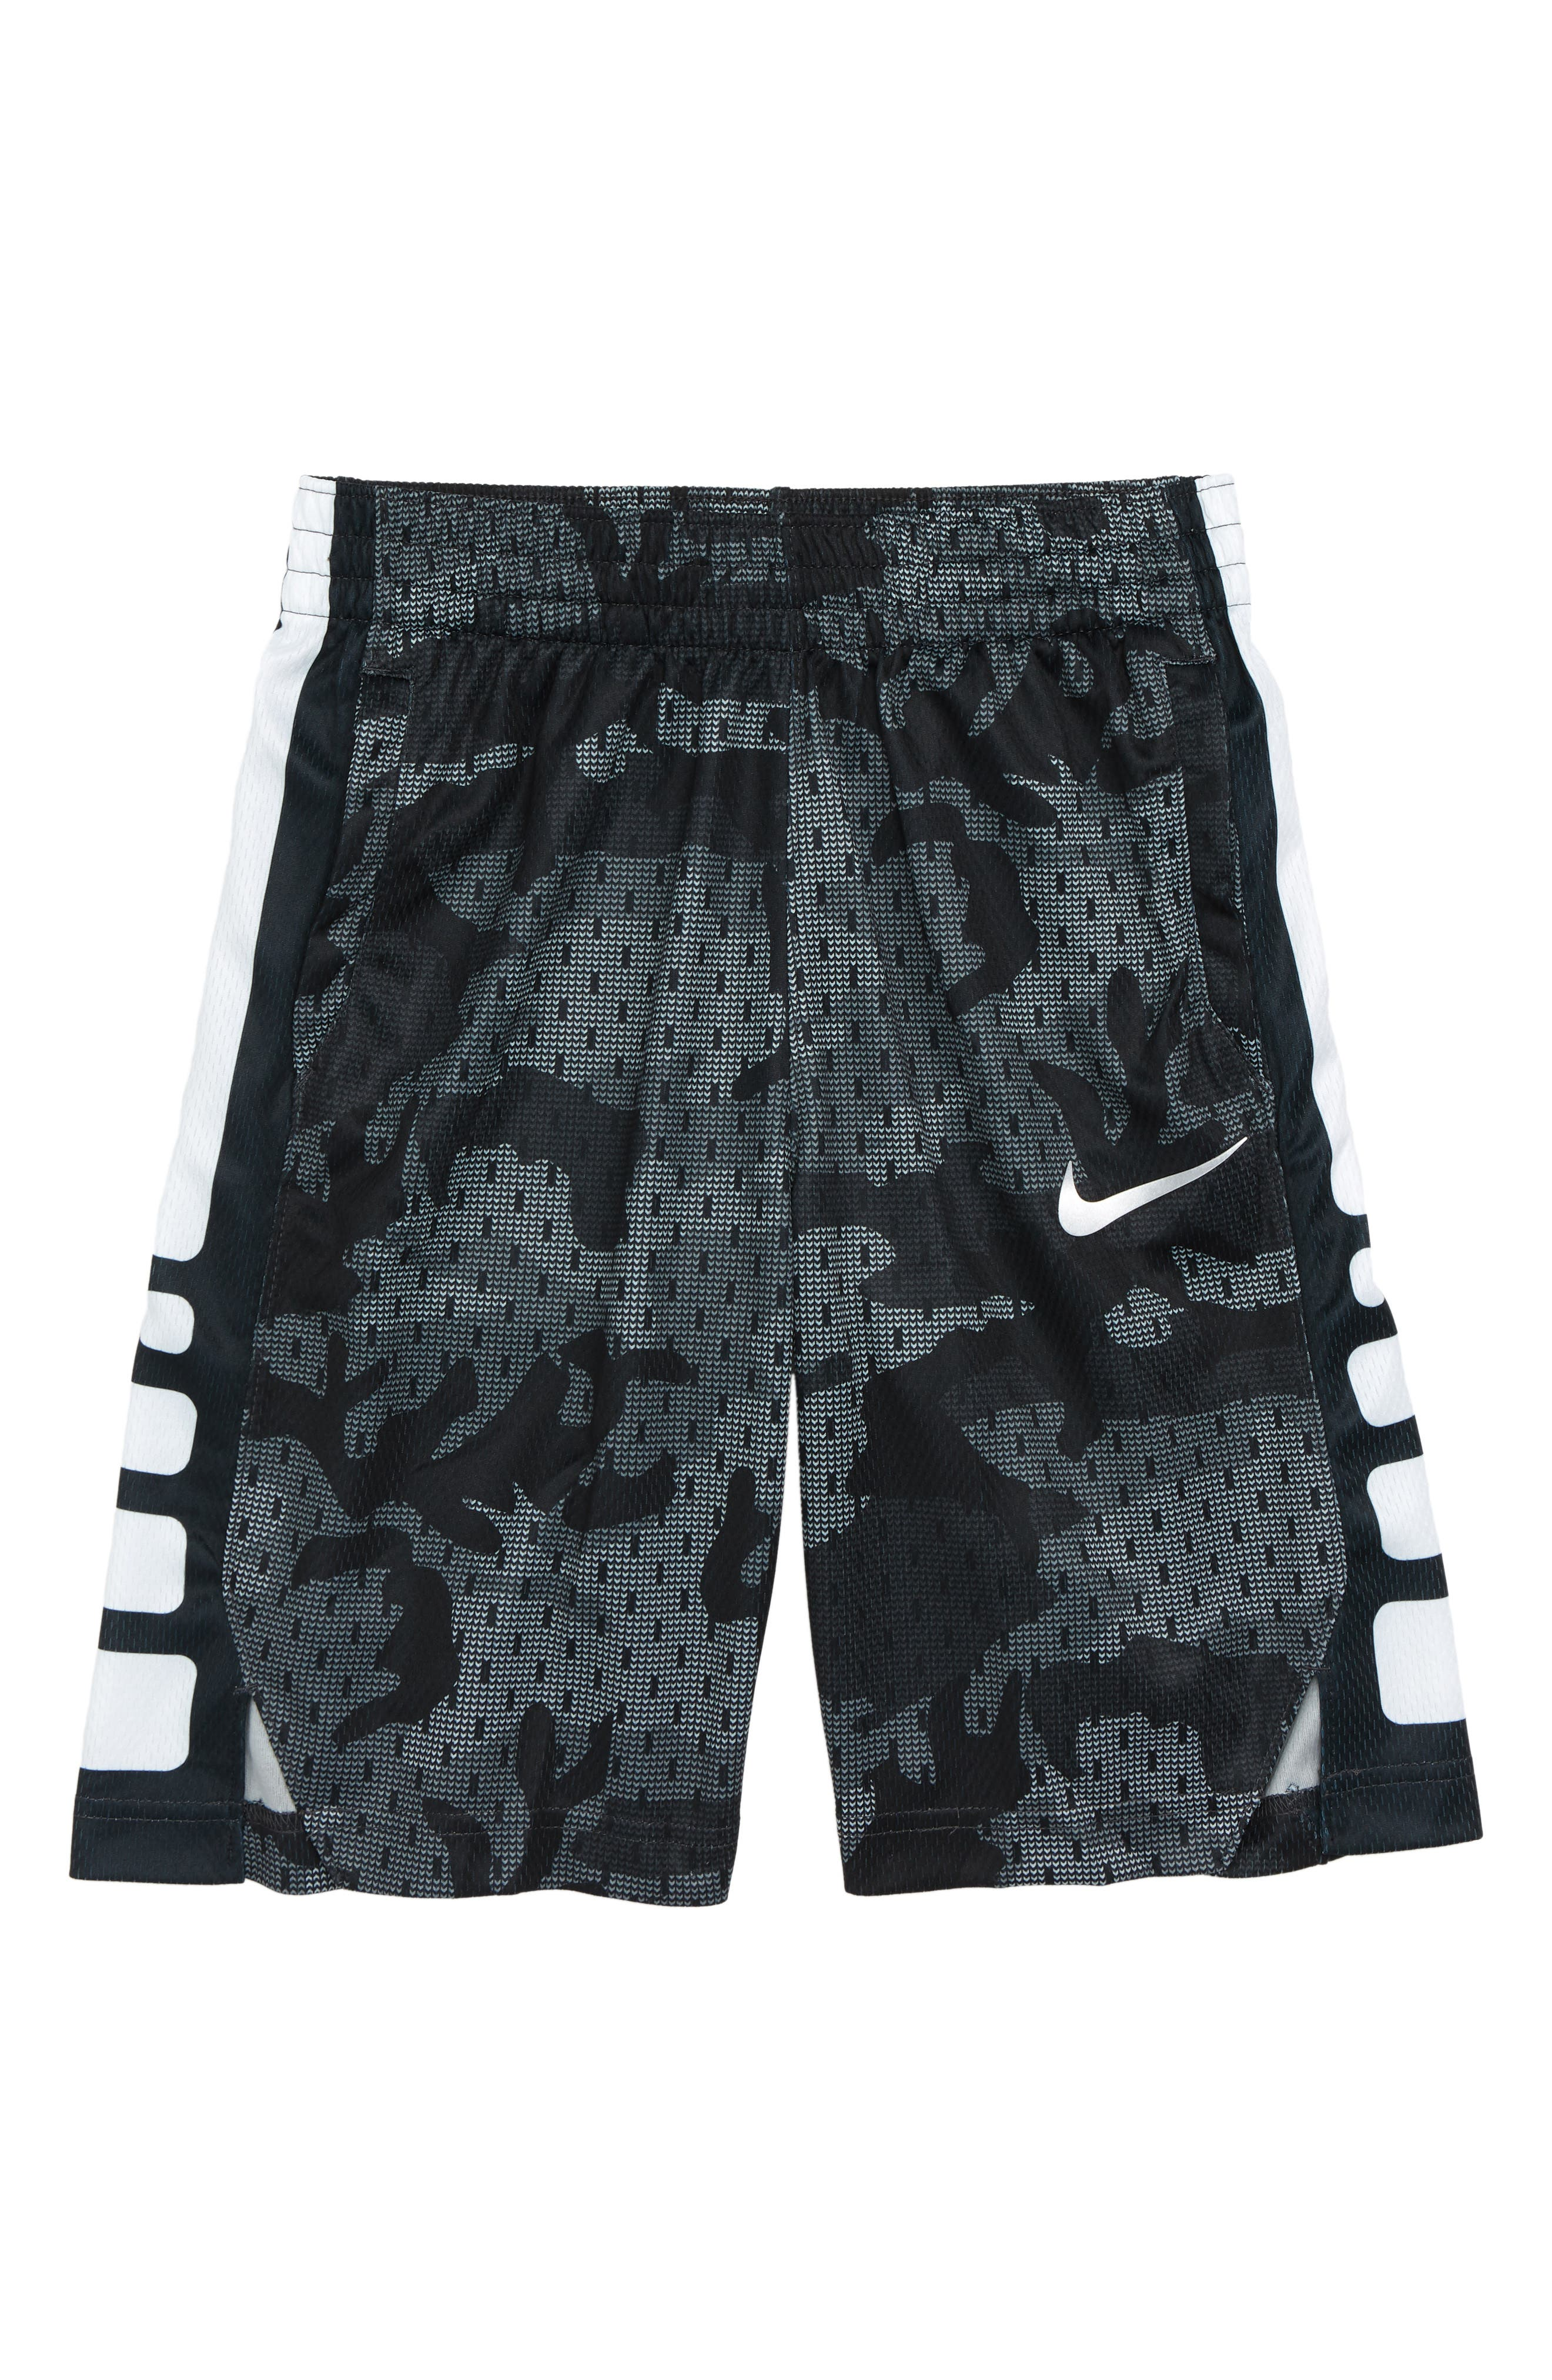 Dry Elite Basketball Shorts,                         Main,                         color, WOLF GREY/ BLACK